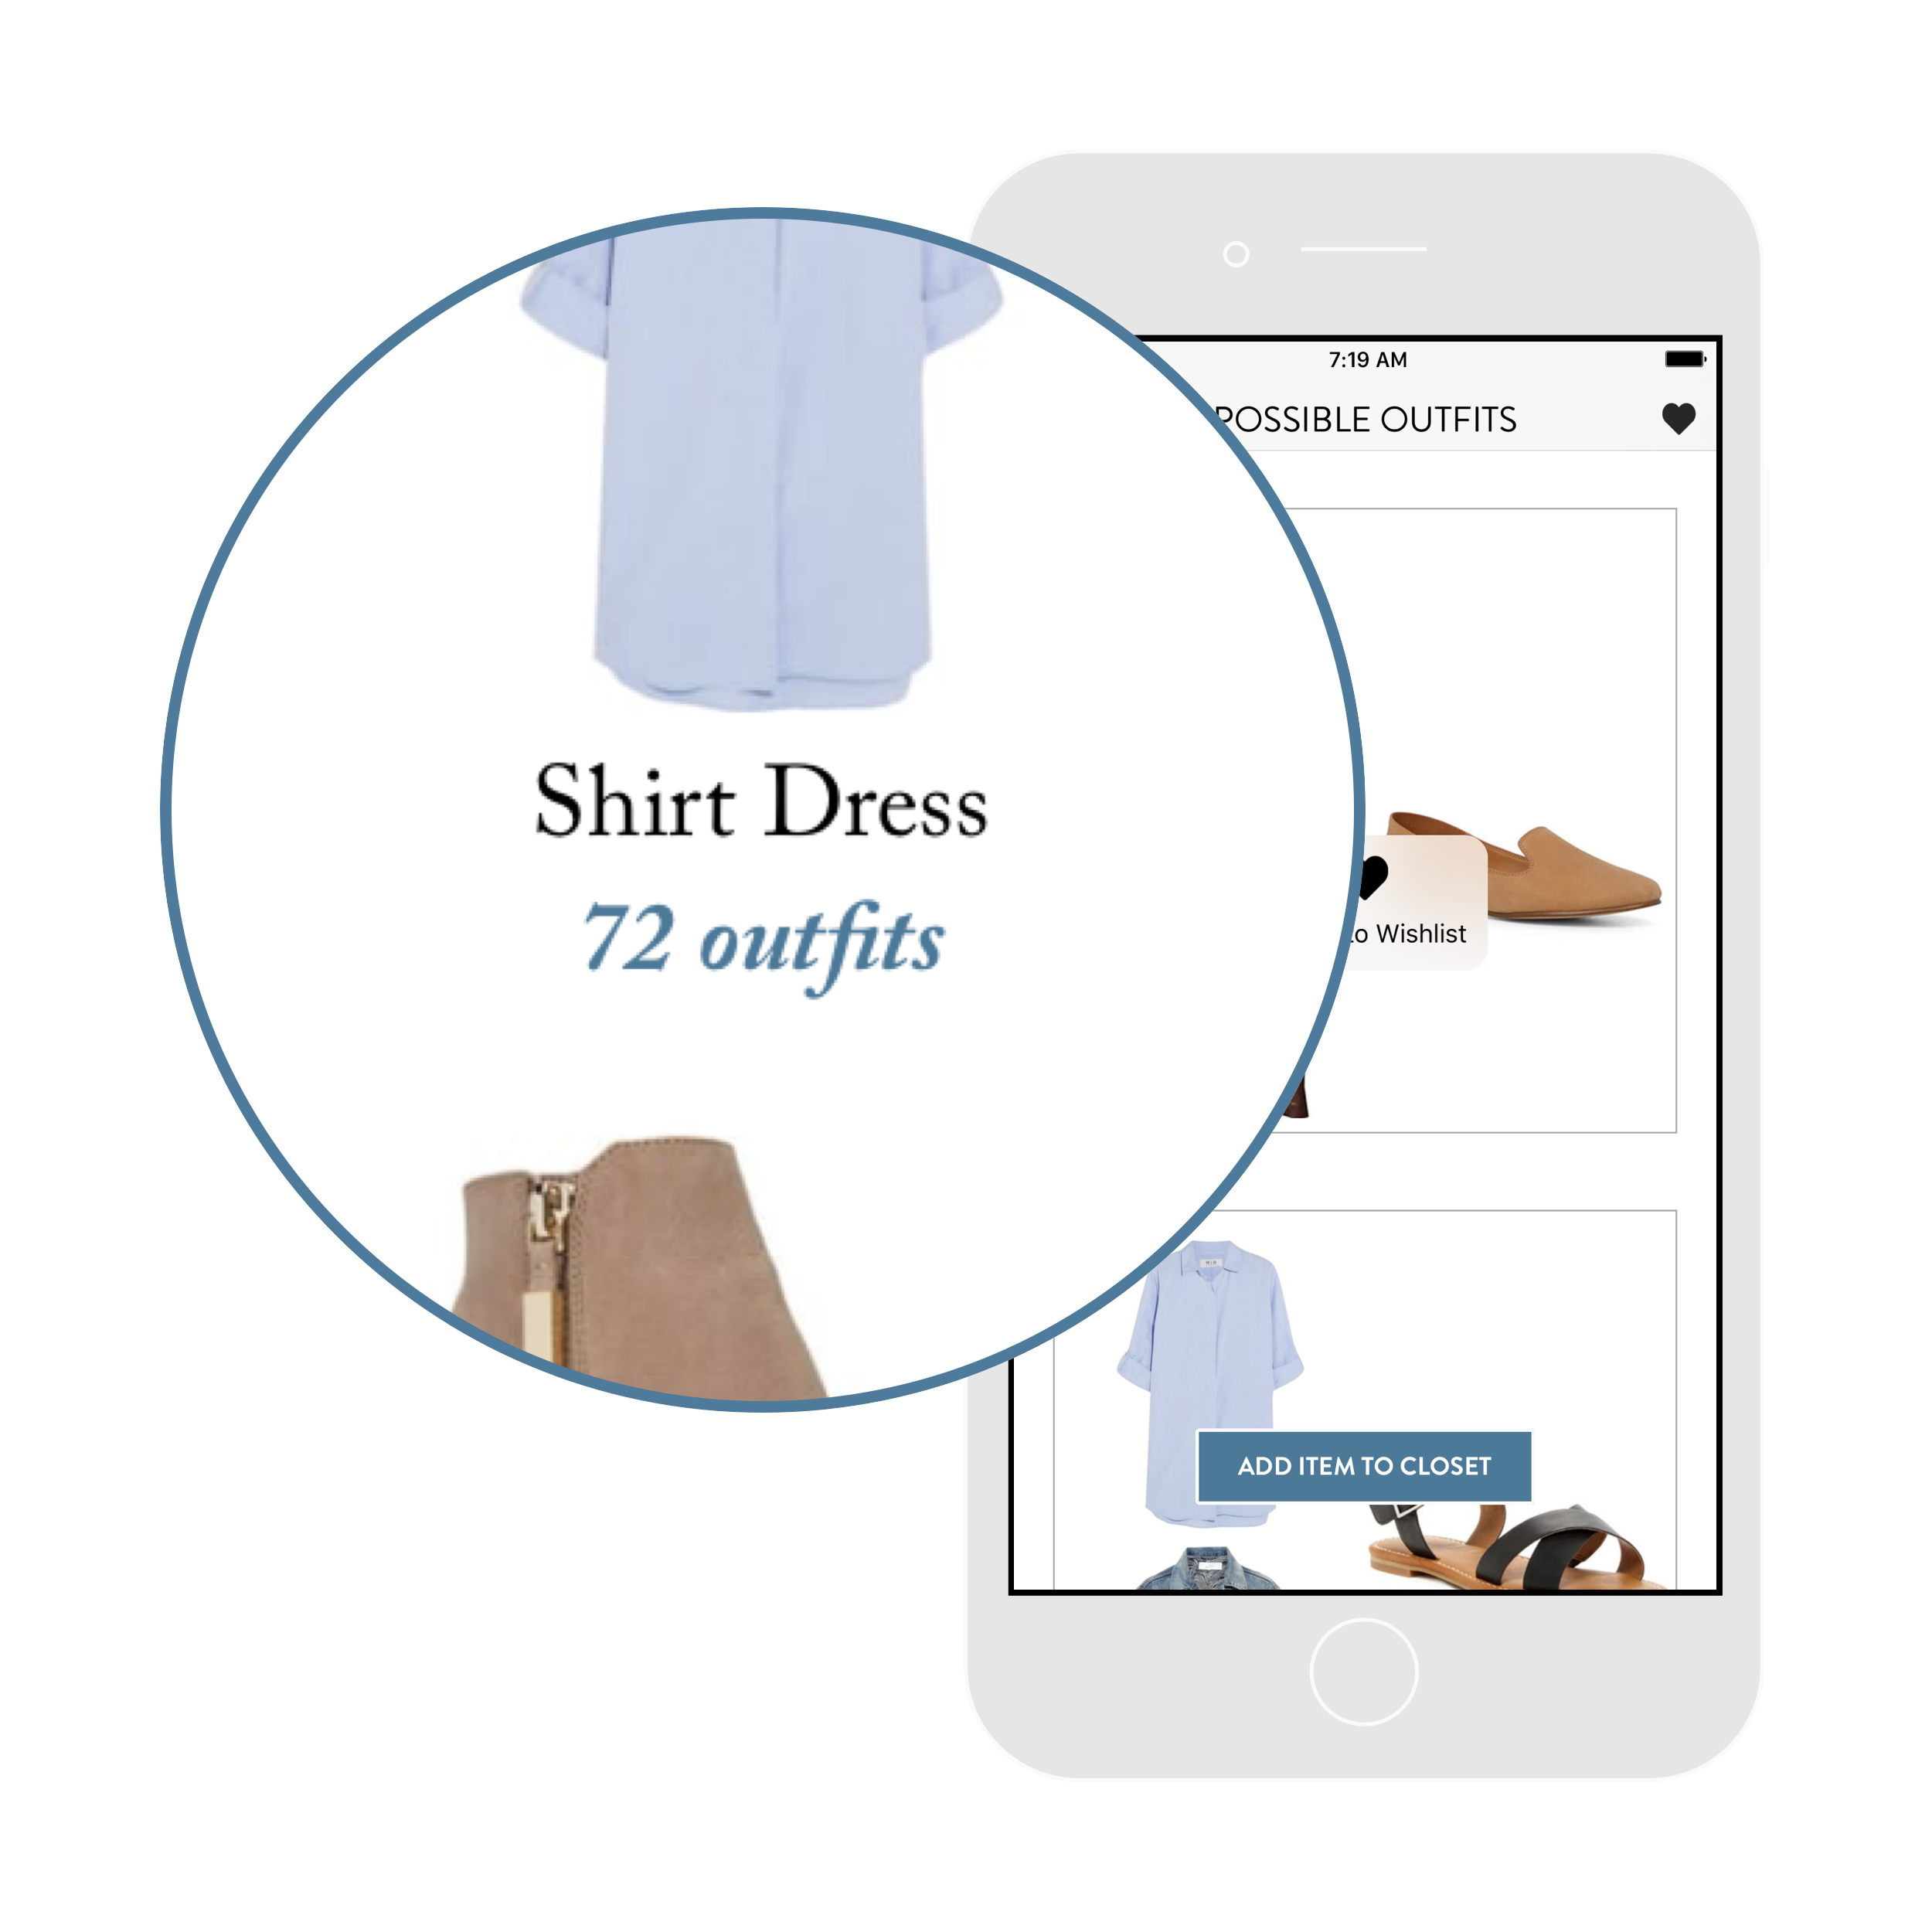 6. Stop shopping. - Add only the items that give you the most outfit possibilities. Trade impulse buys for items you love and will wear again and again.